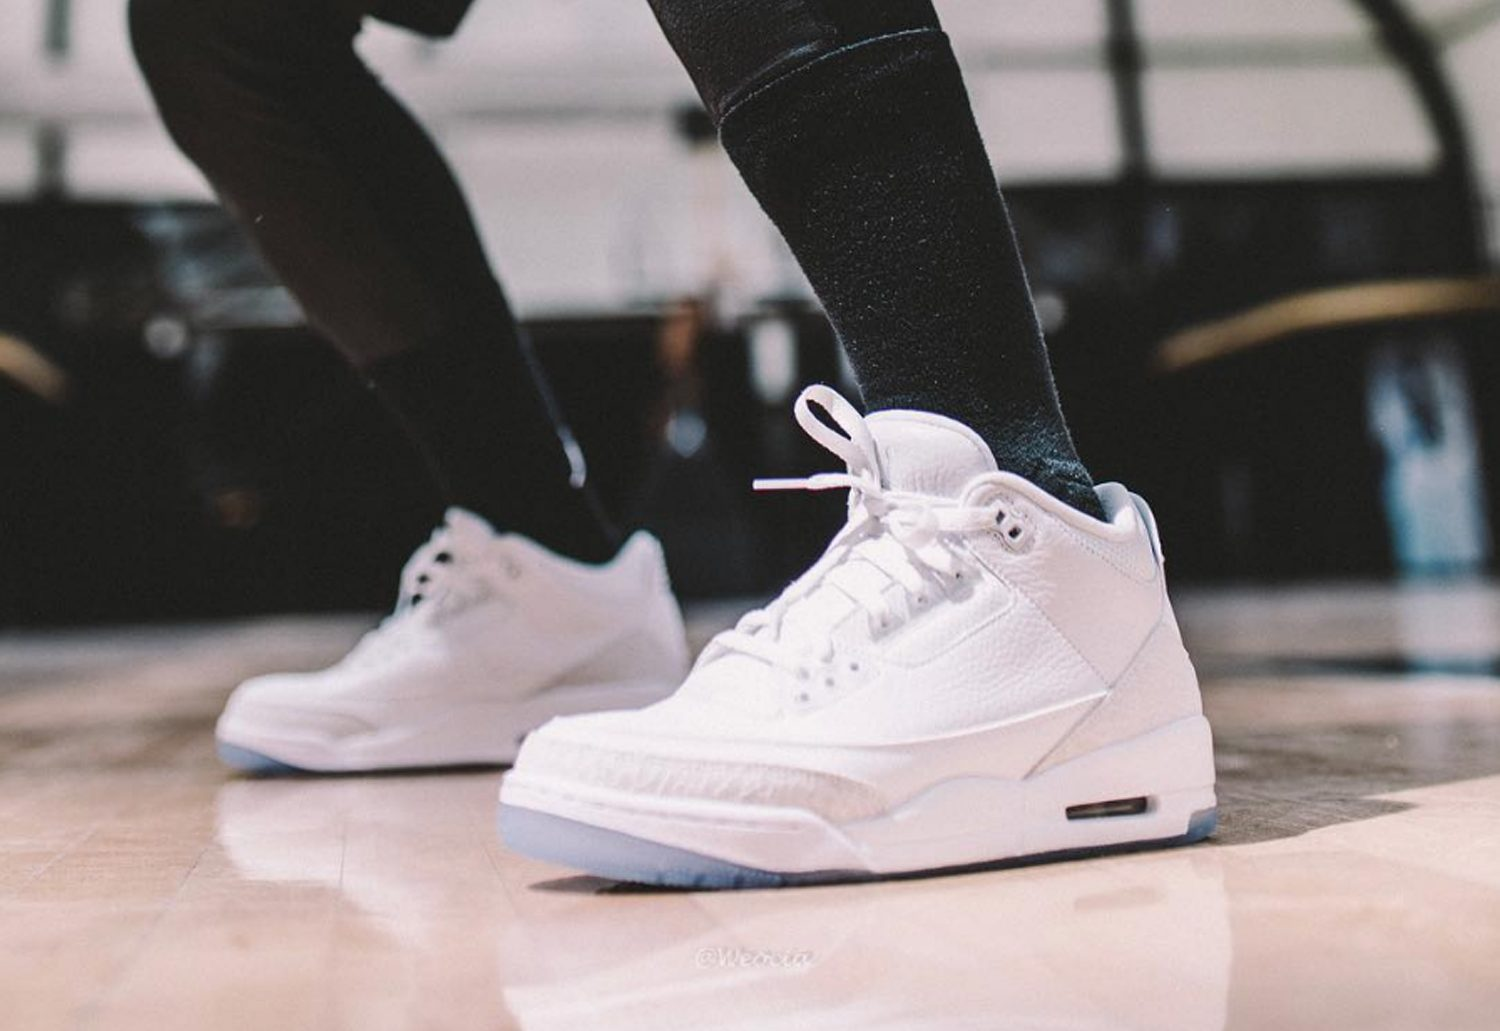 3 White Living Room Ideas: Another Look At The Upcoming Air Jordan 3 'Pure White